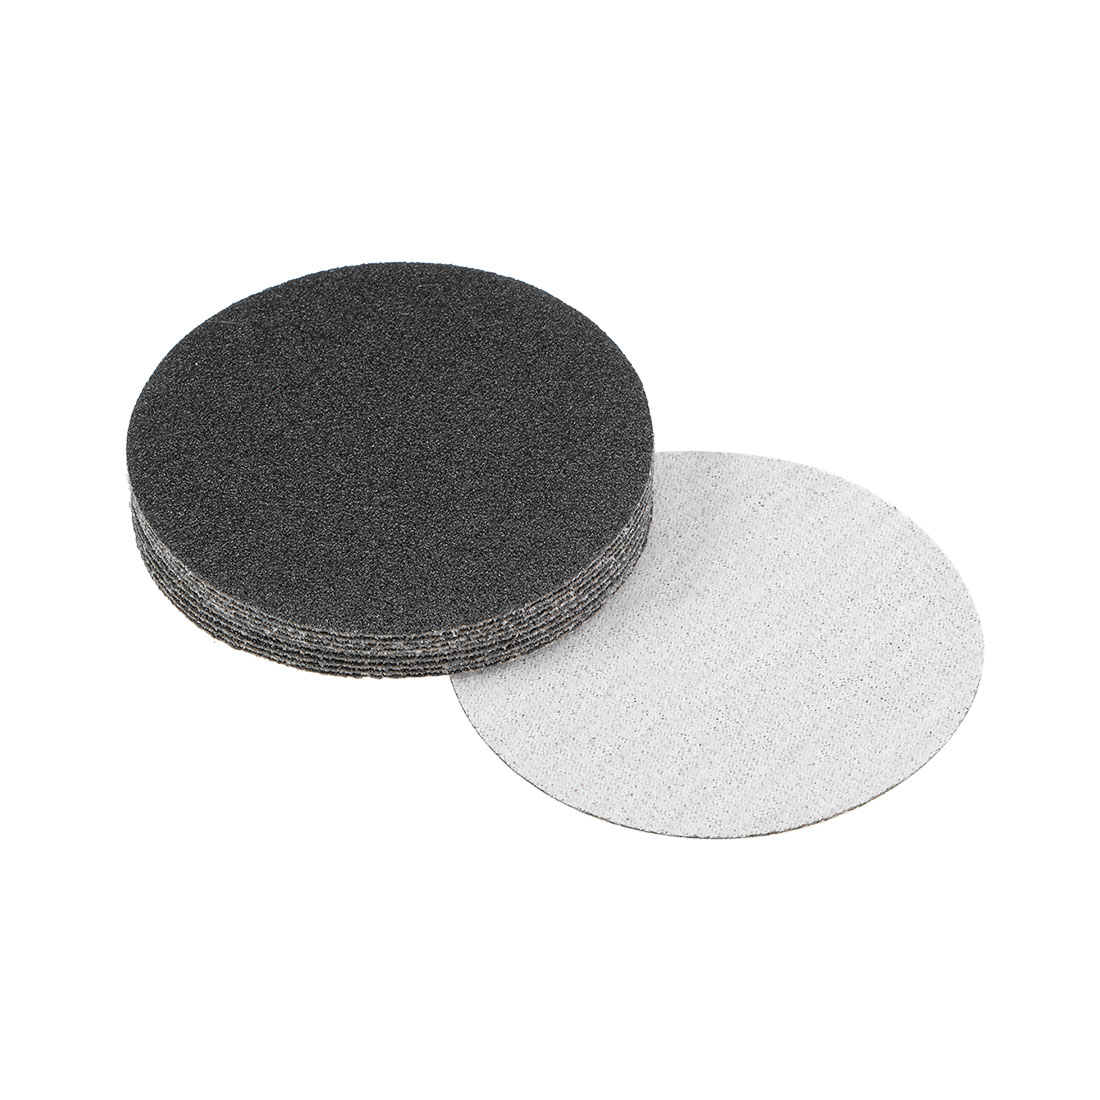 3 inch Wet Dry Discs 60 Grit Hook and Loop Sanding Disc Silicon Carbide 10pcs